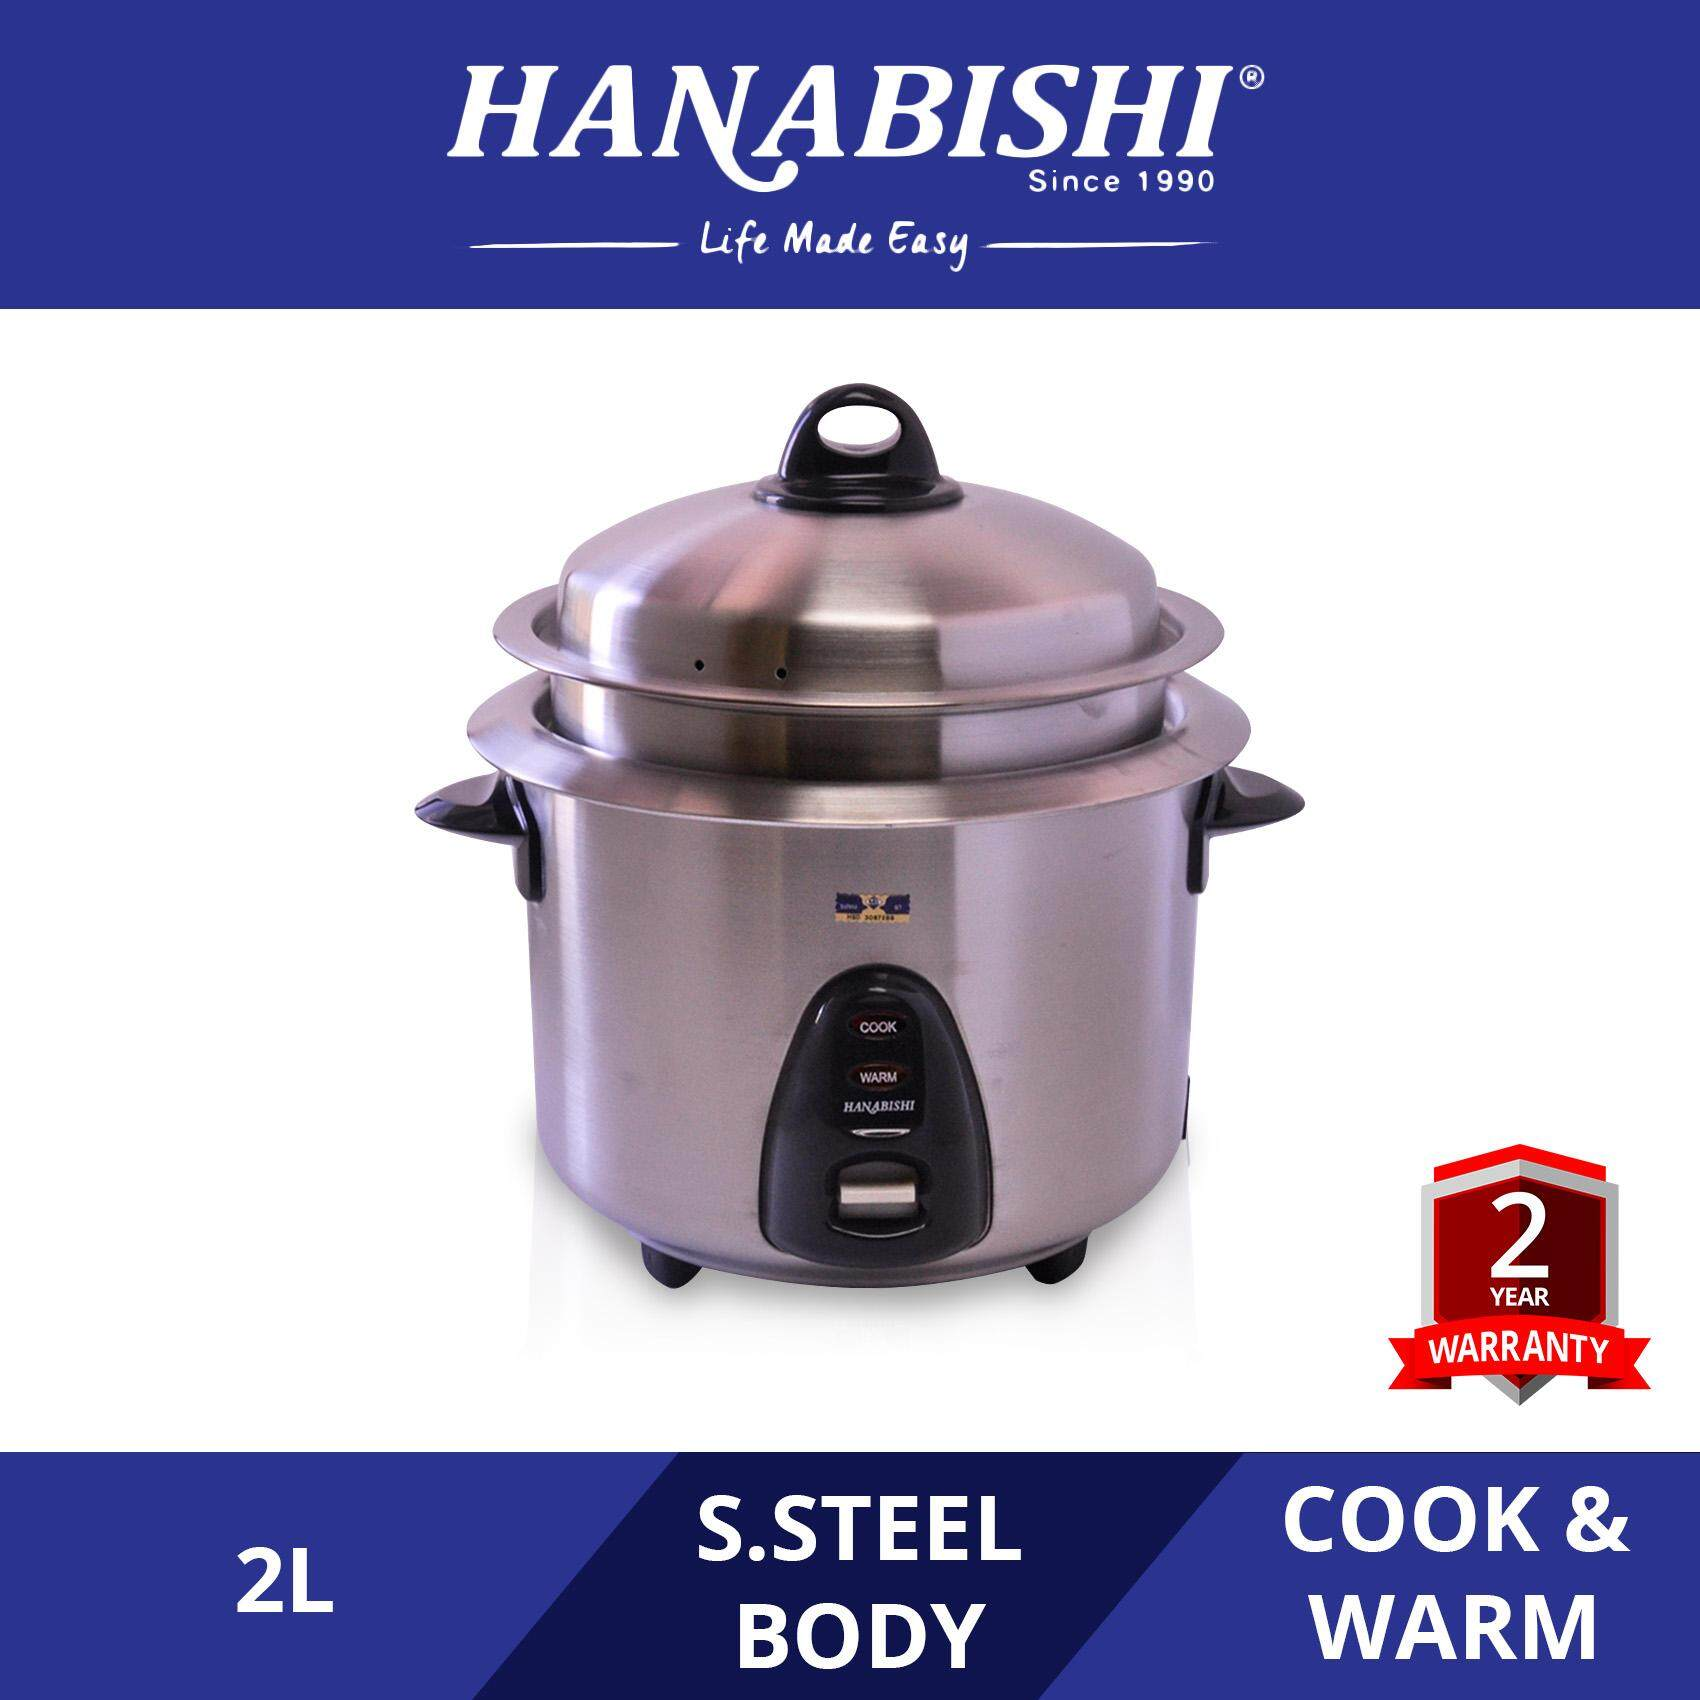 Hanabishi 3 Ply Stainless Steel Rice Cooker 2.0L HA3299R (Fully 304 Stainless Steel Body and Bowl with Steamer)